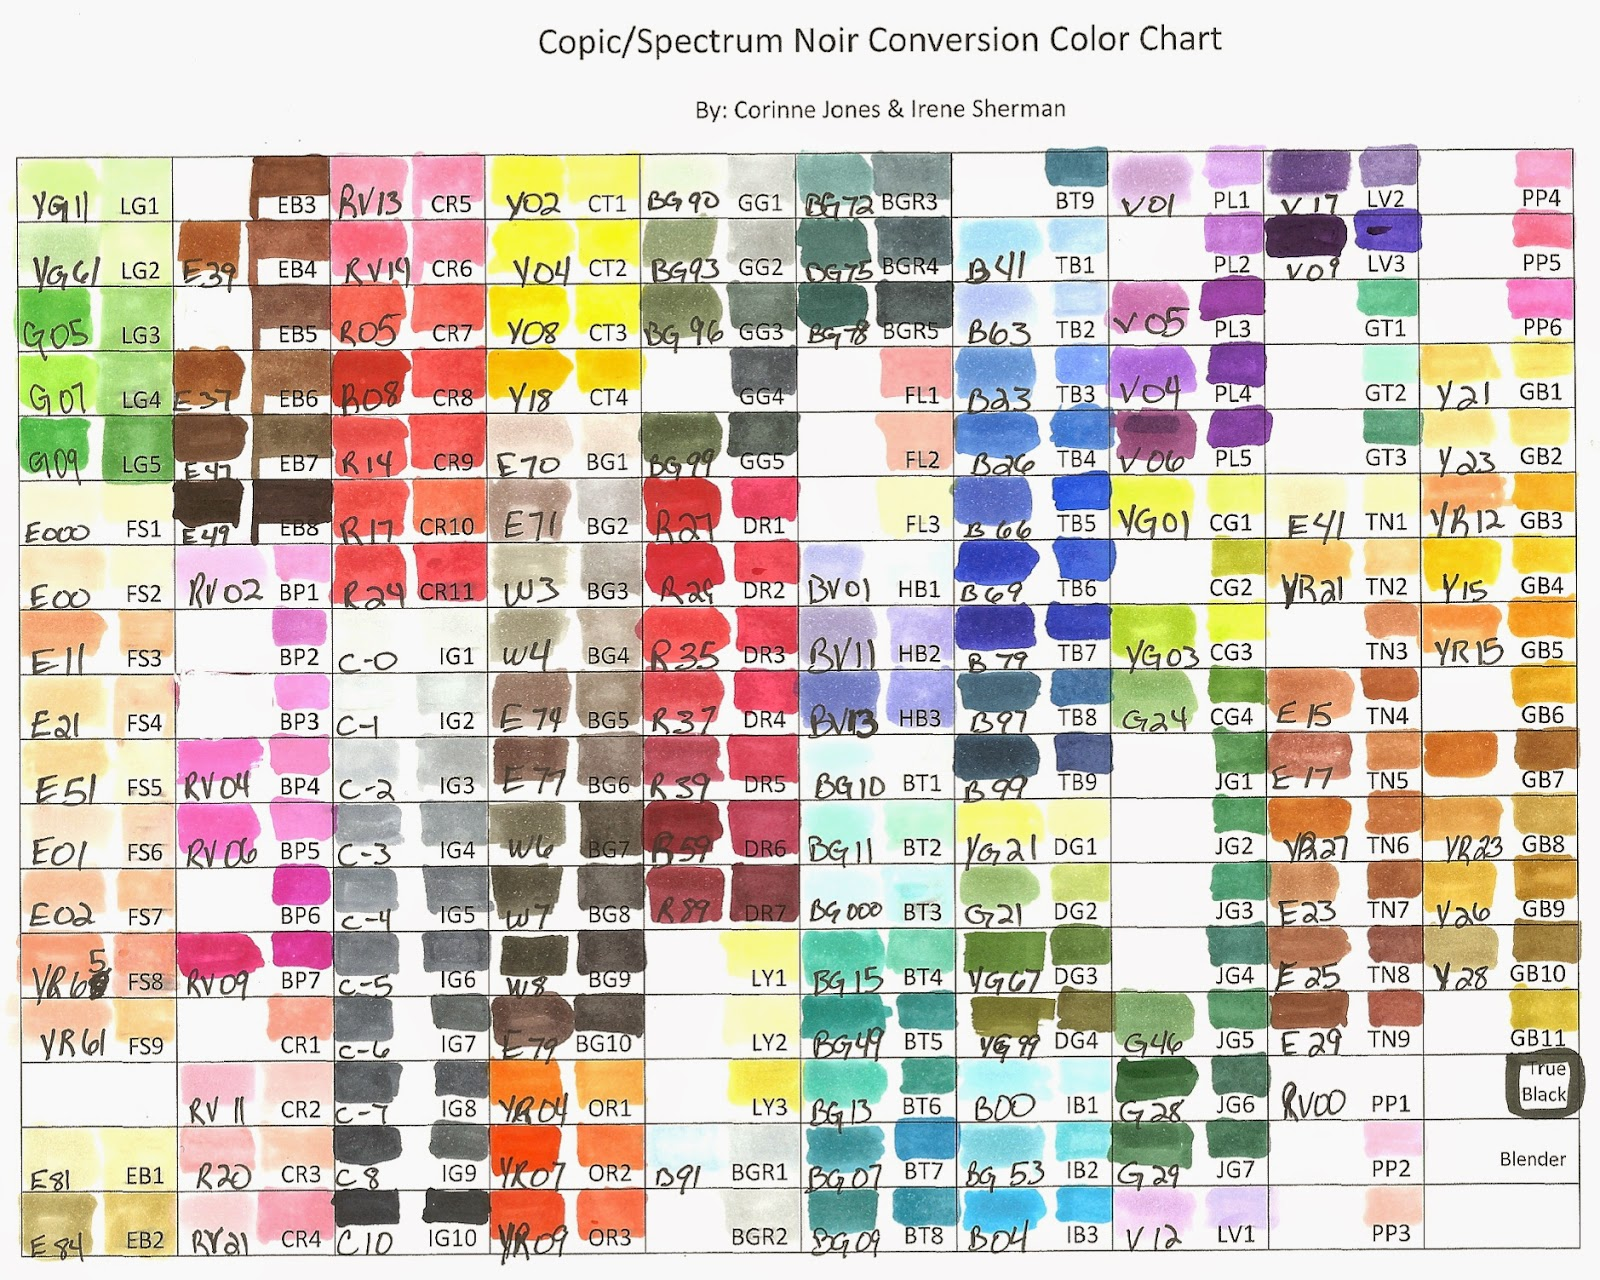 Copic marker spectrum noir color conversion chart wish upon a scrap